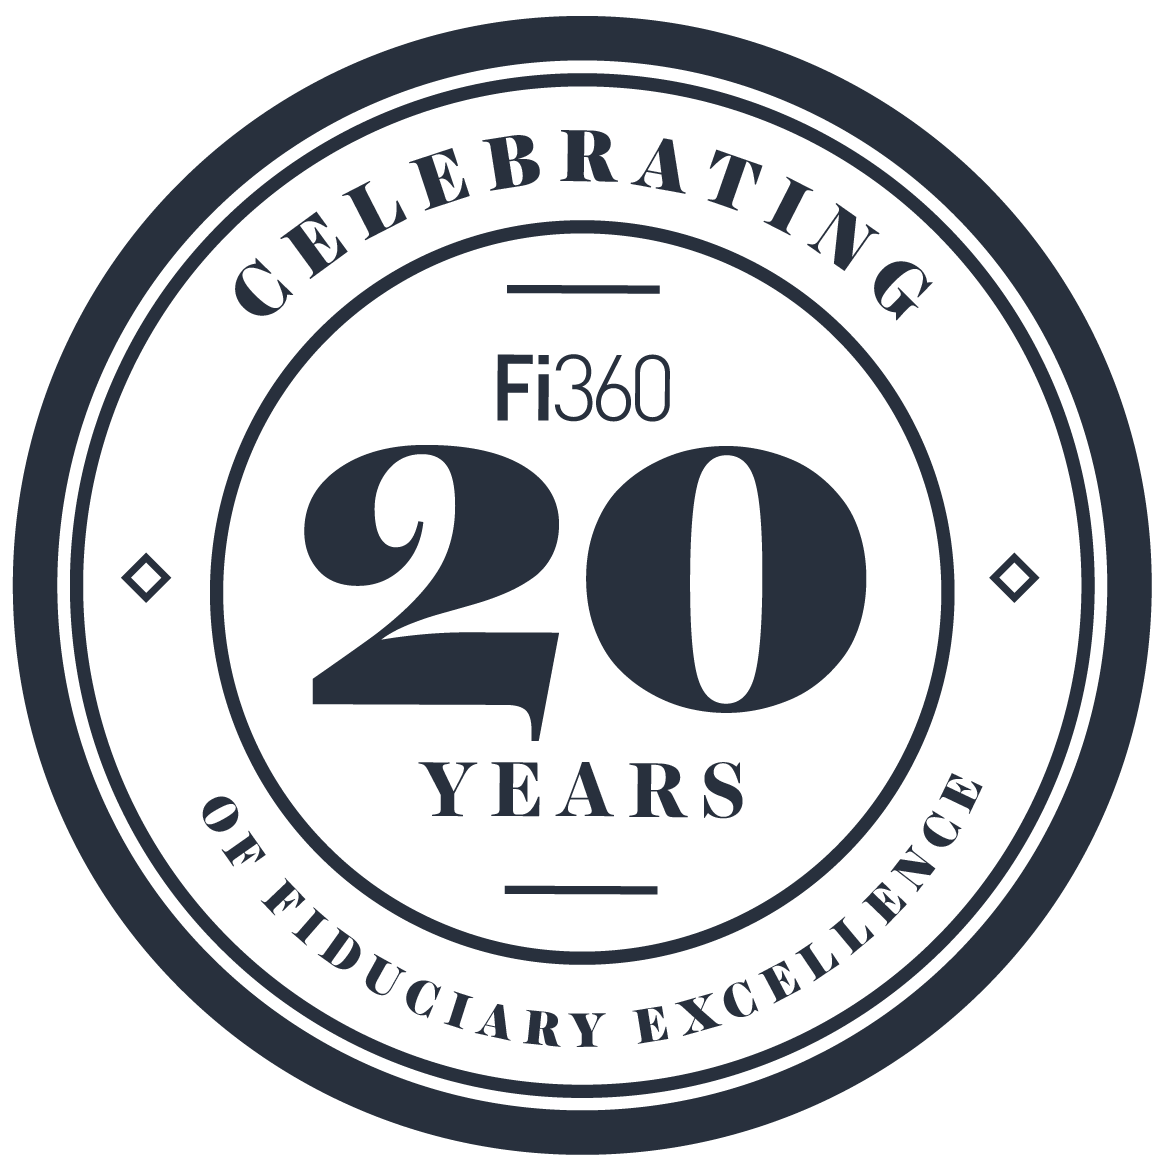 Fi360 – the Early Years